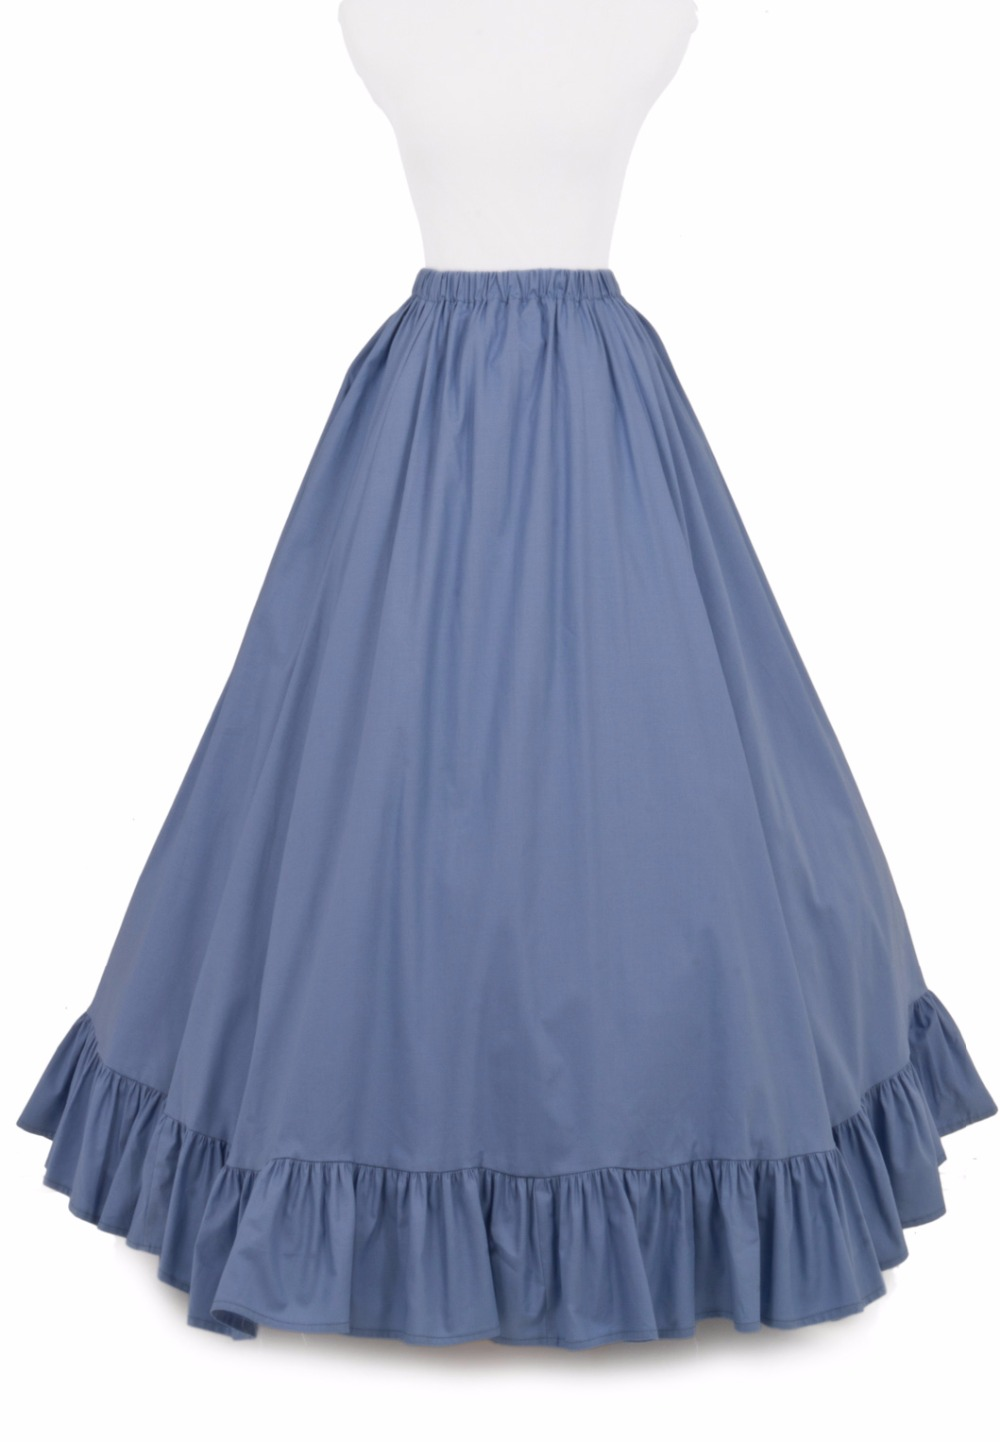 0a59a253e7 Buy gathers skirt and get free shipping on AliExpress.com